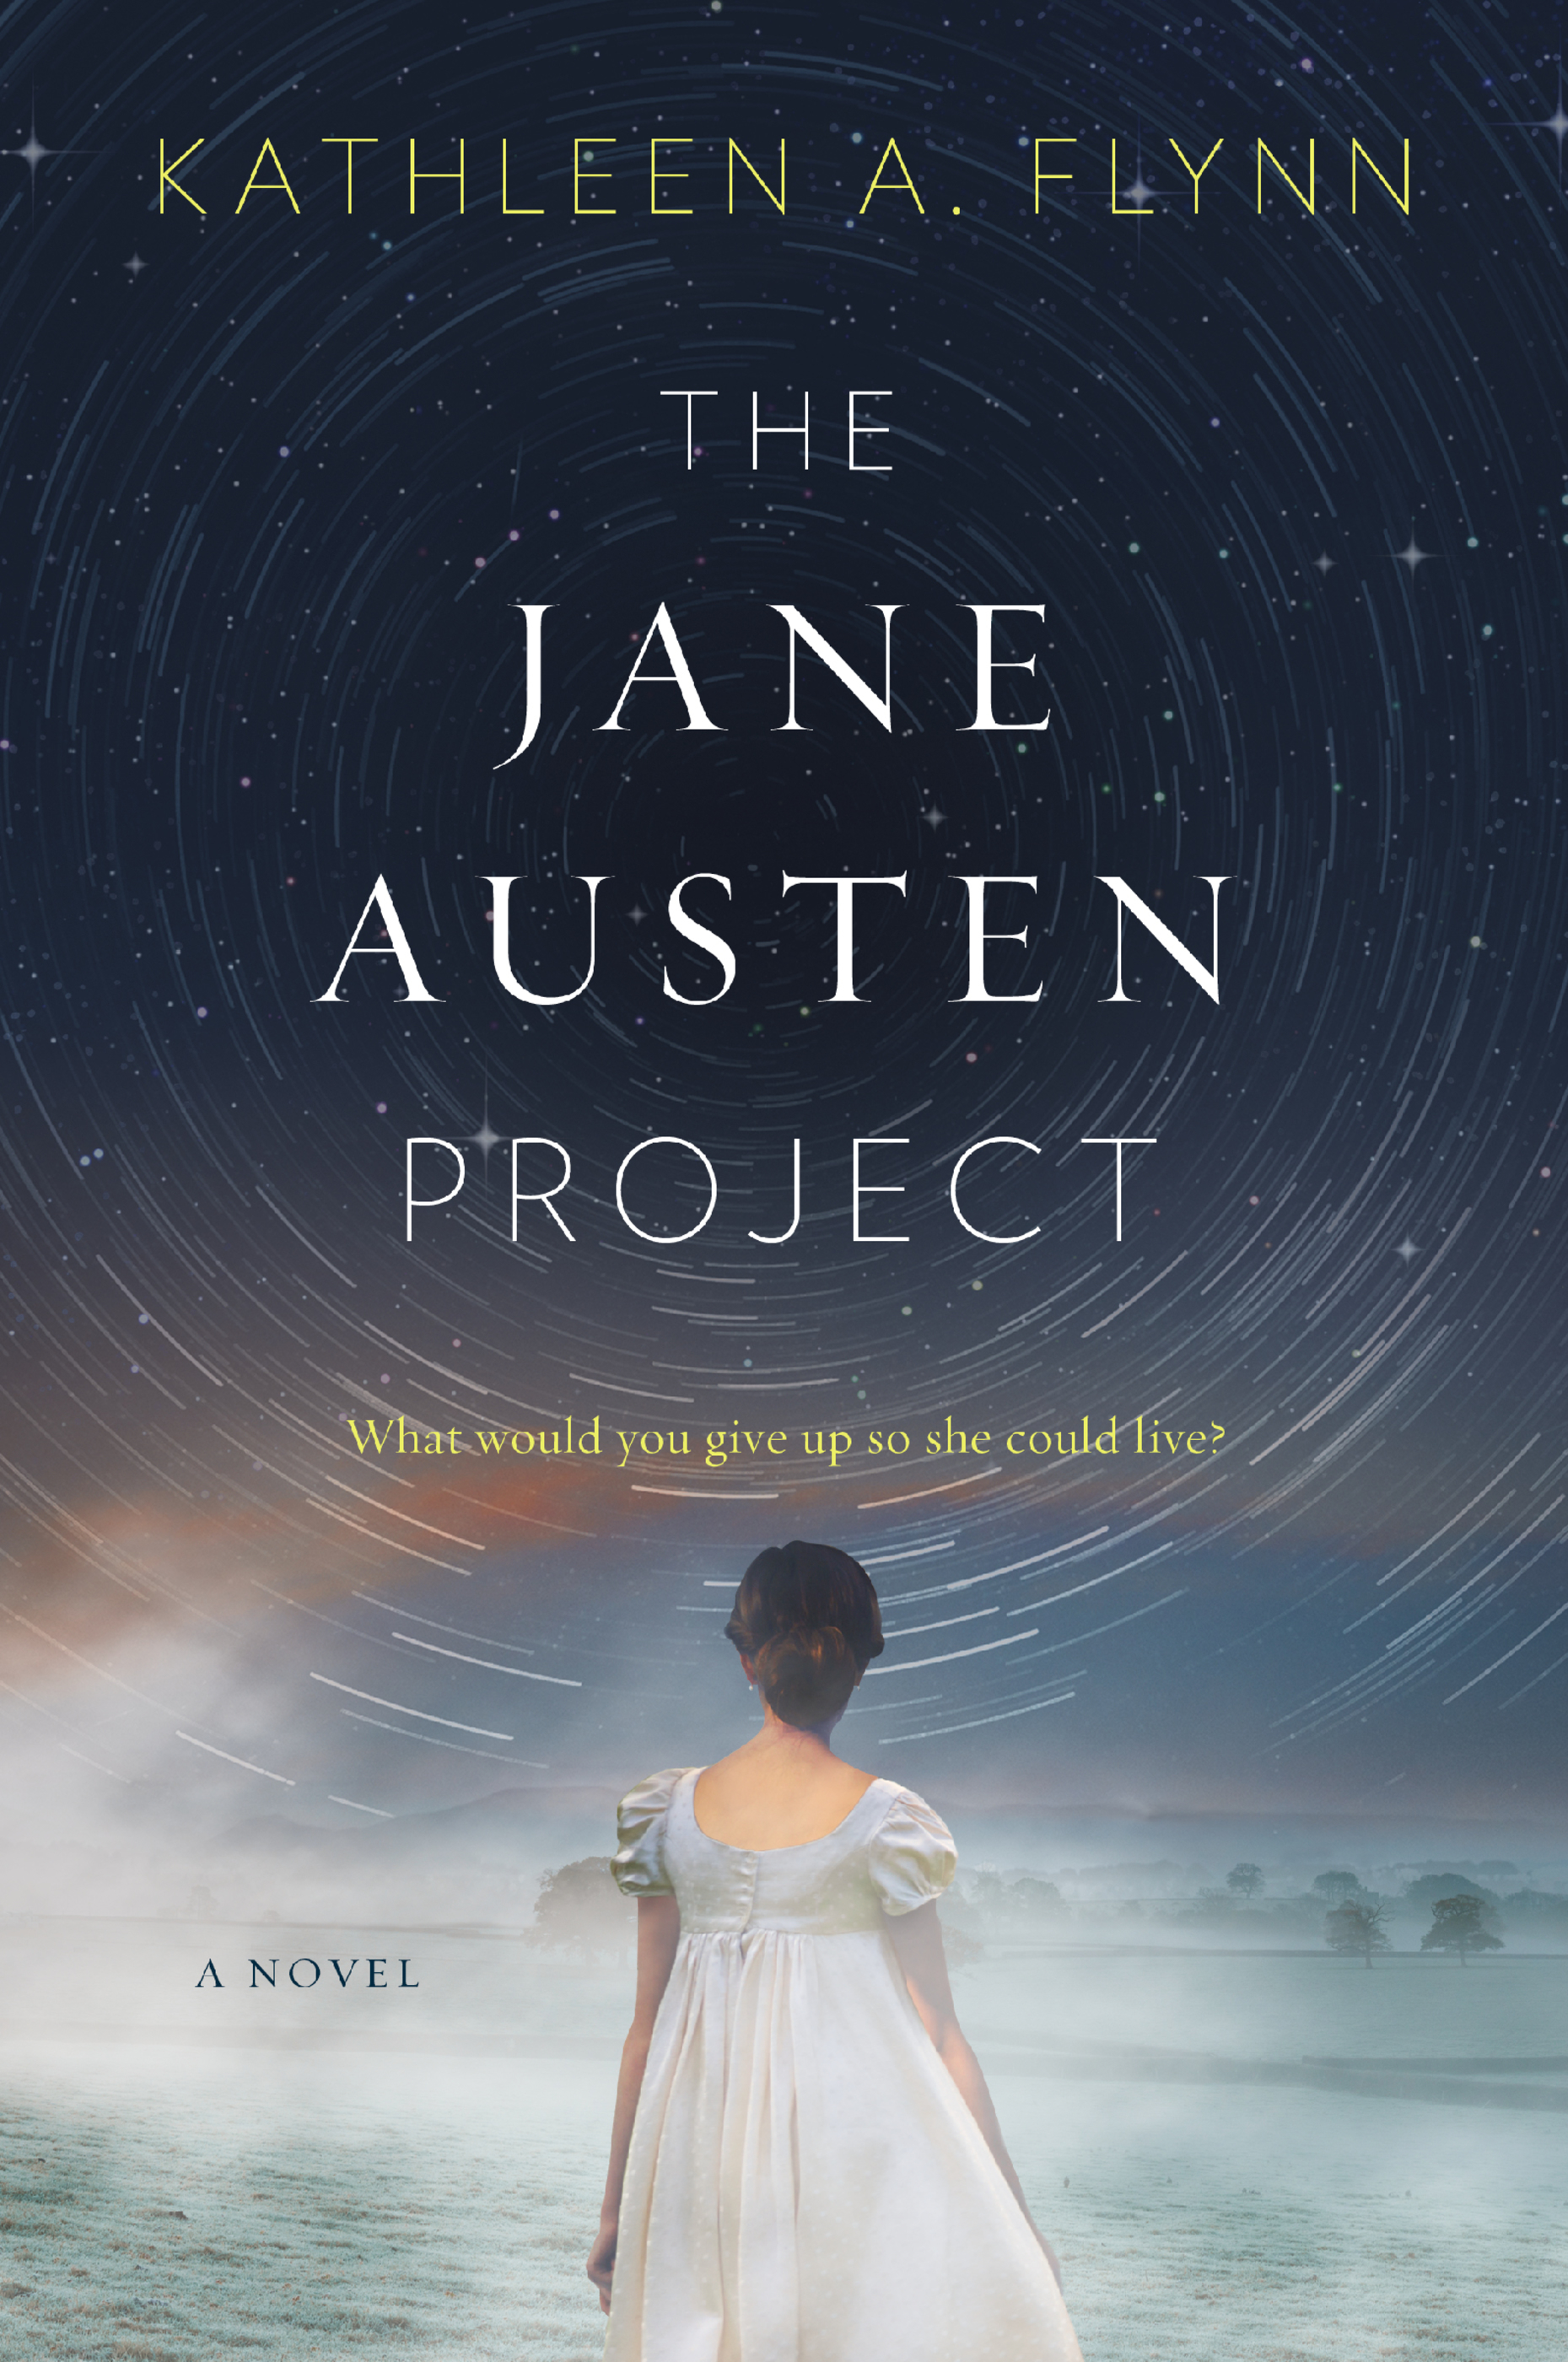 Book Launch: The Jane Austen Project by Kathleen A. Flynn